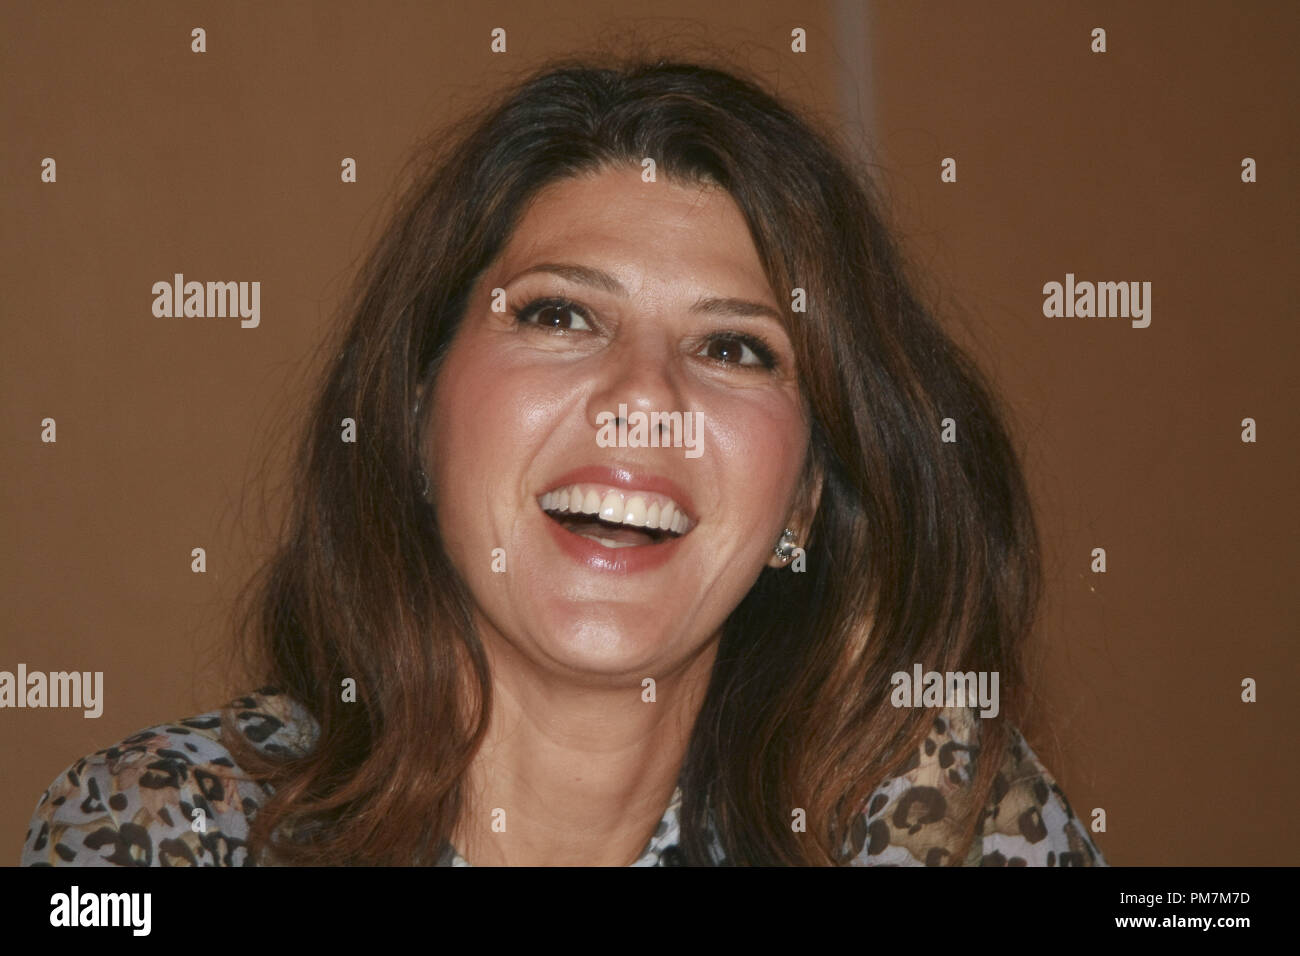 """Marisa Tomei """"The Ides of March""""  Portrait Session, September 26, 2011.  Reproduction by American tabloids is absolutely forbidden. File Reference # 31175 040JRC  For Editorial Use Only -  All Rights Reserved Stock Photo"""